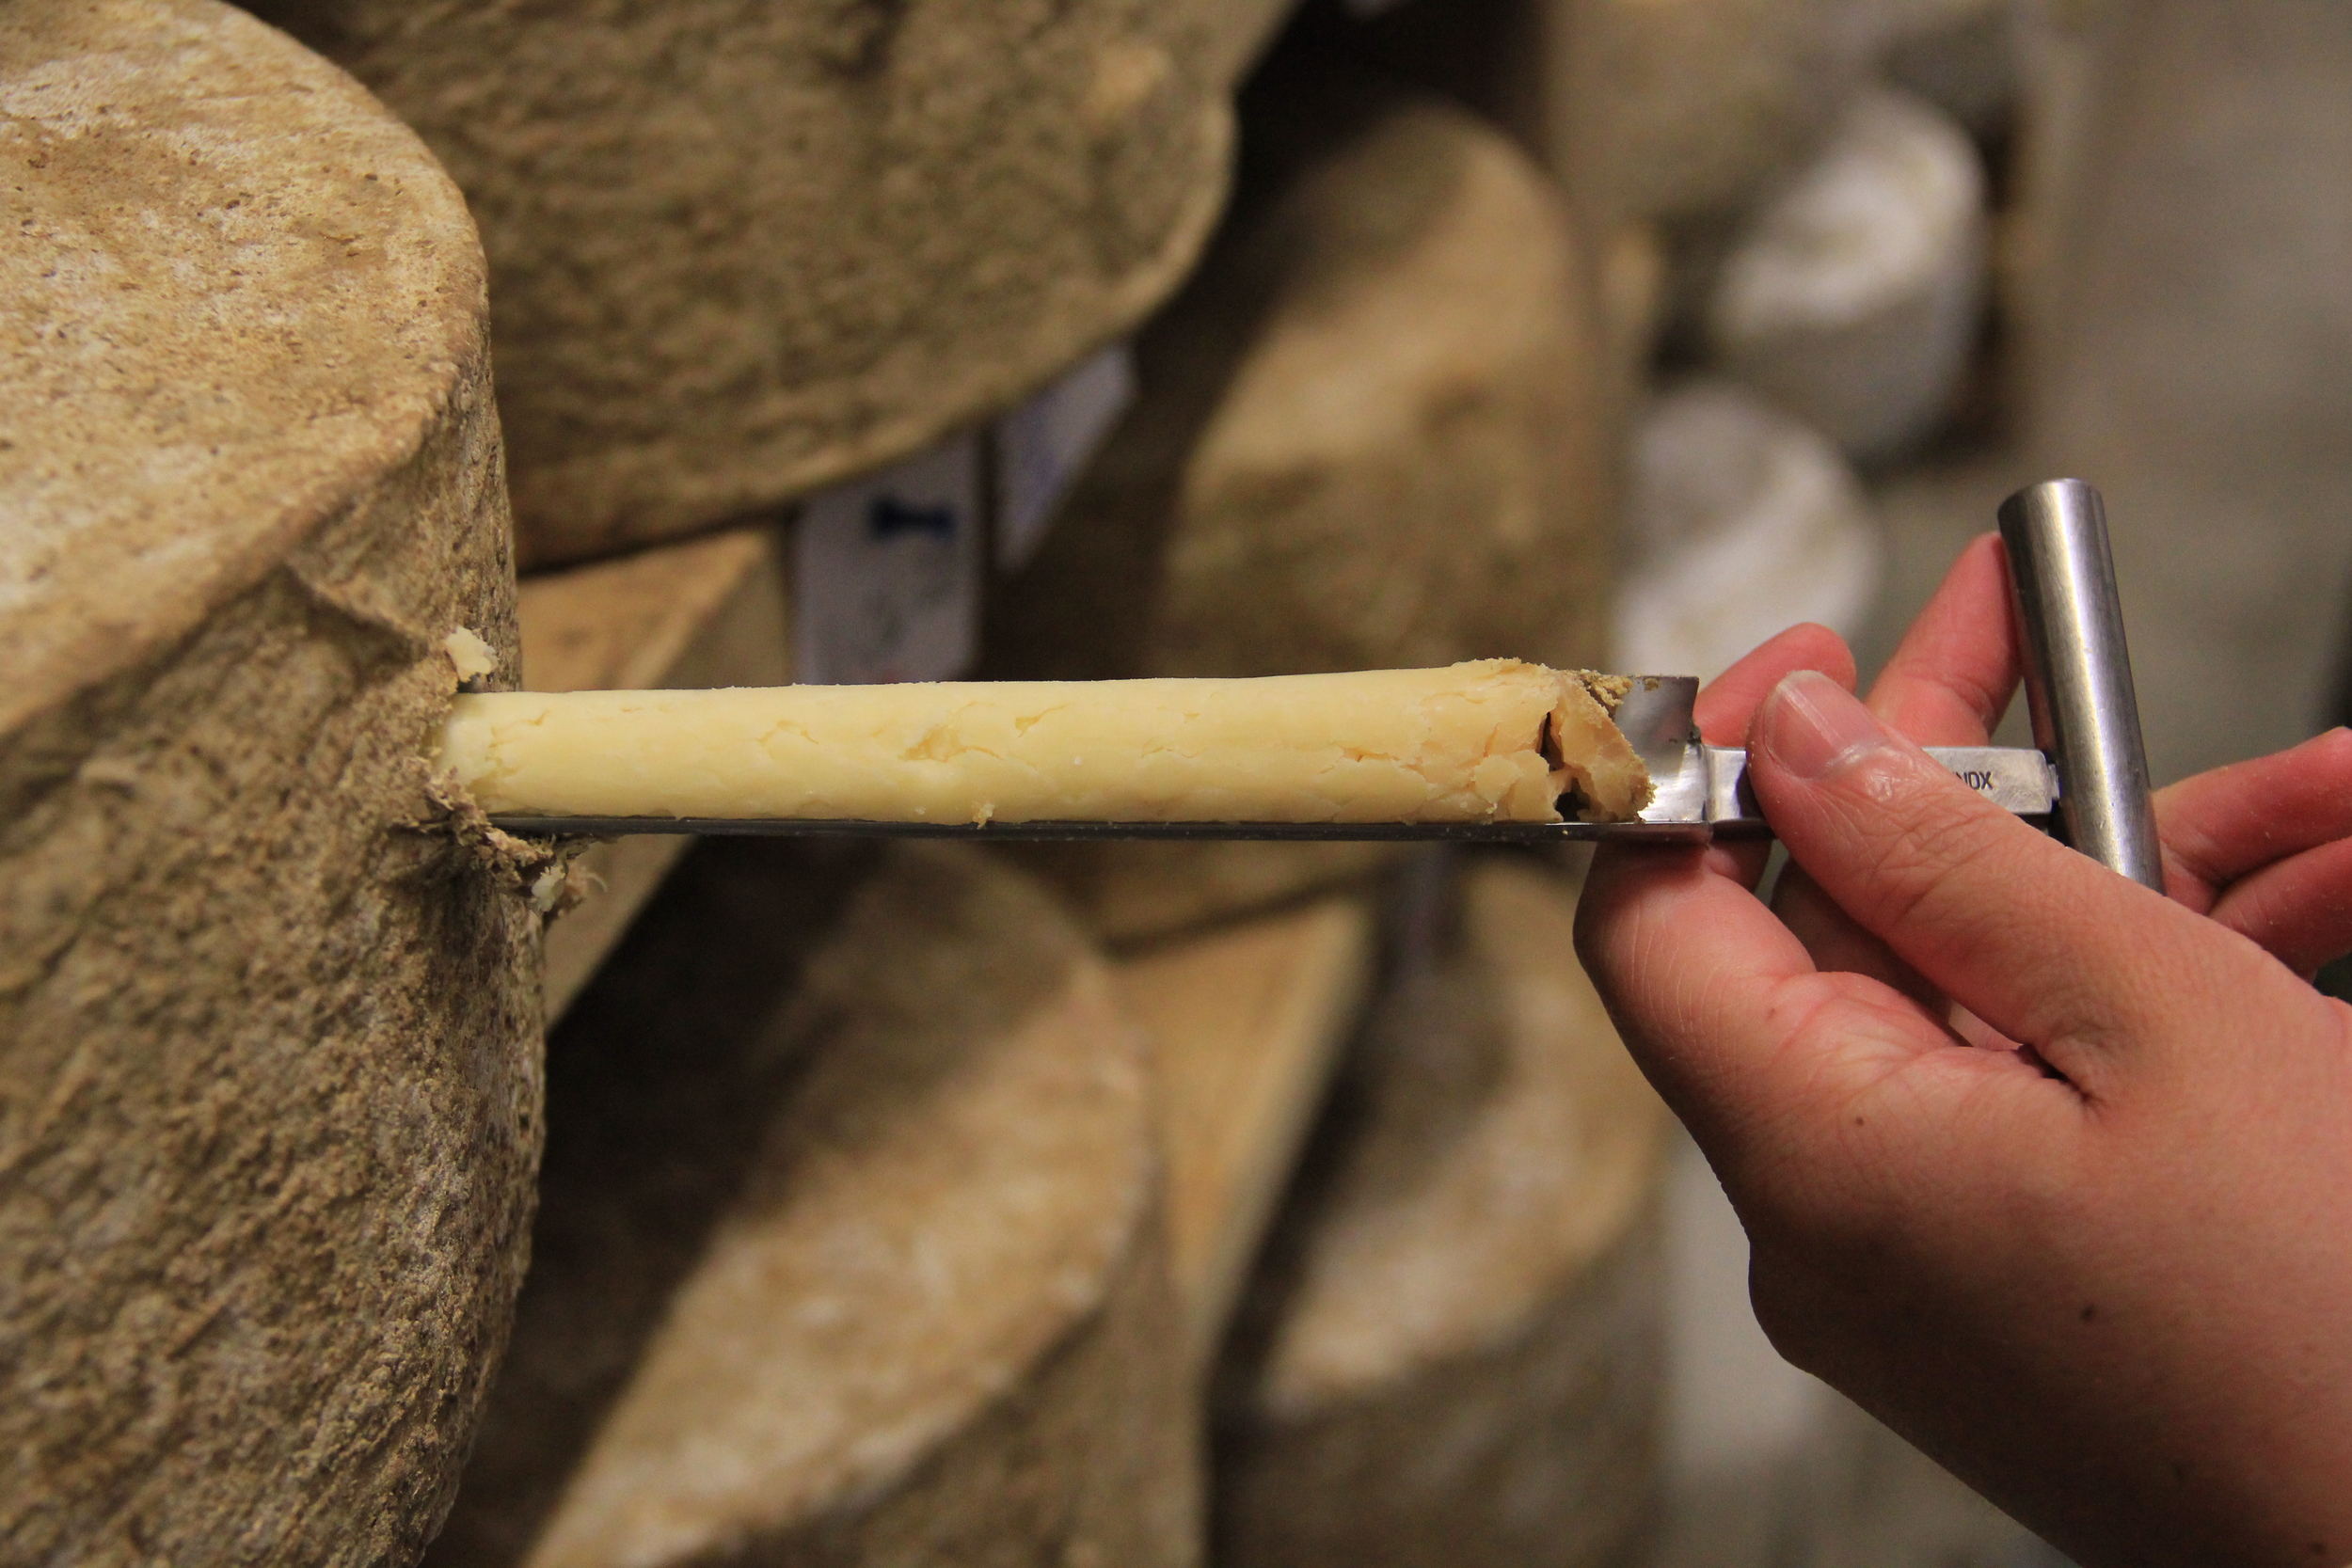 Cheeses are tasted using this trier as they approach maturity. Wheels are deemed ready based on flavor, not on exact age. Several ideal flavor profiles are possible, and generally occur between 10 and 13 months of age.